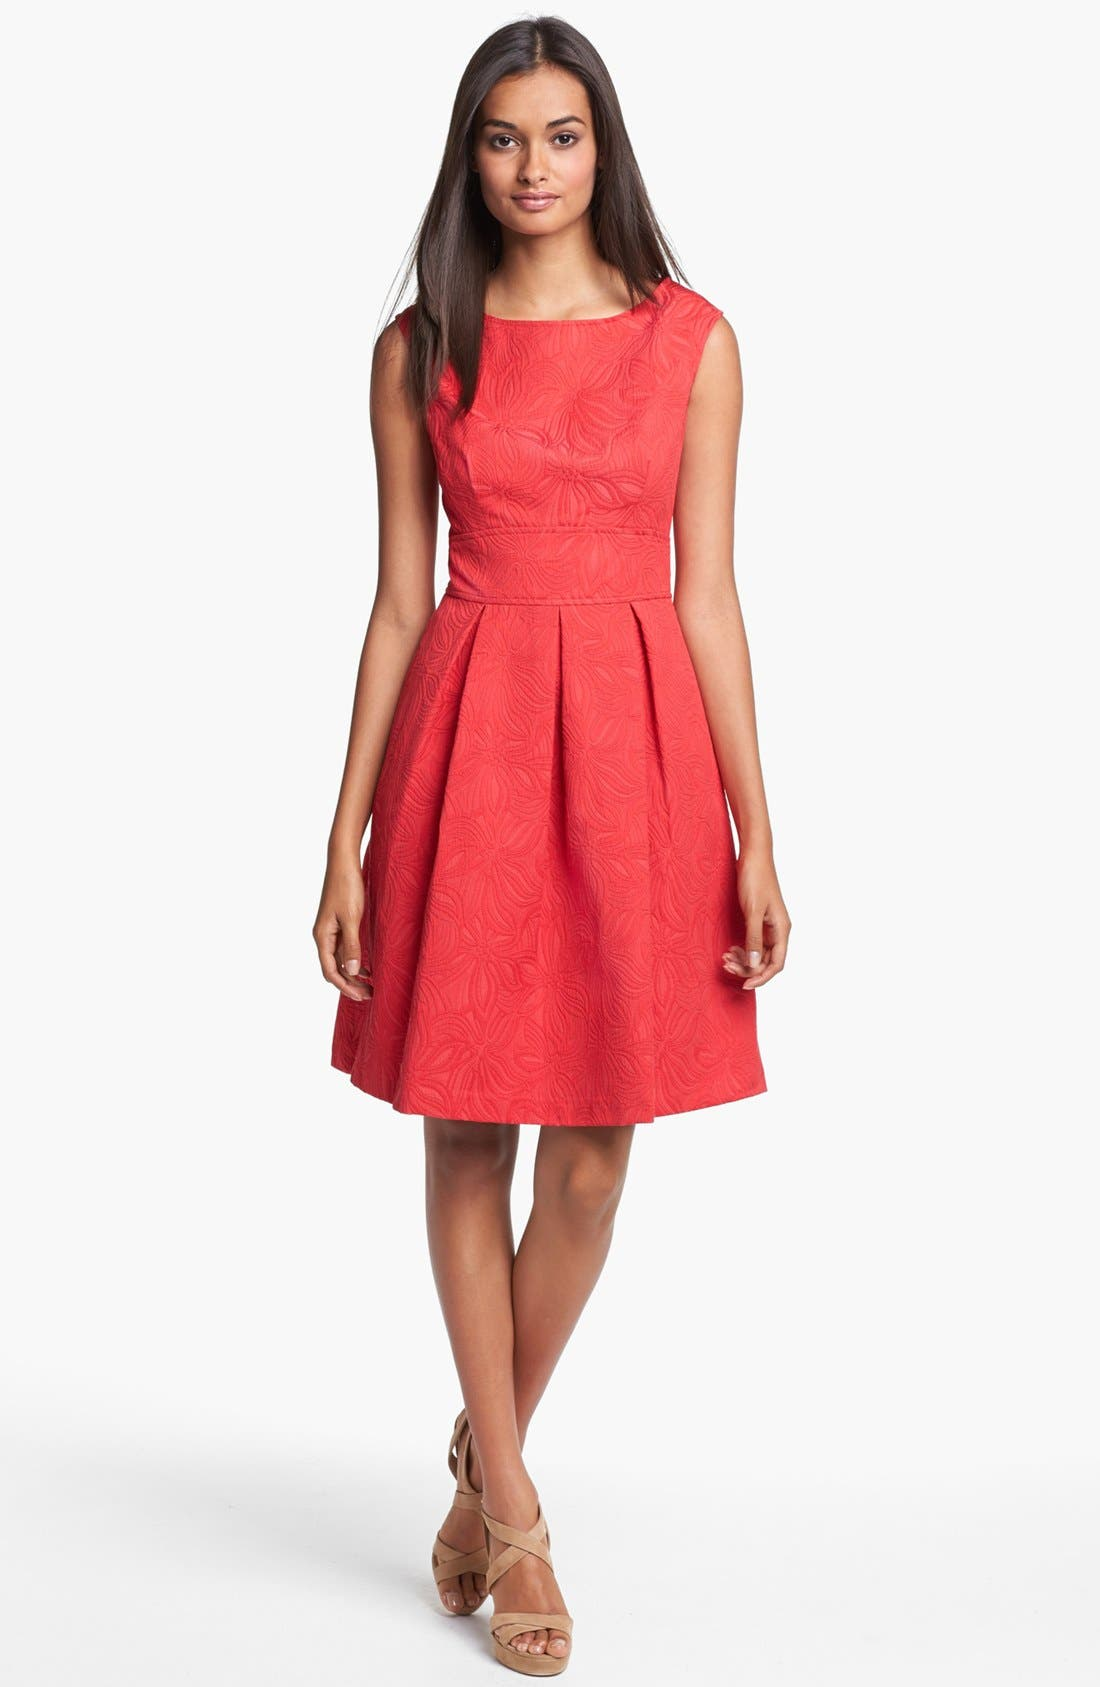 Alternate Image 1 Selected - Adrianna Papell Floral Jacquard Fit & Flare Dress